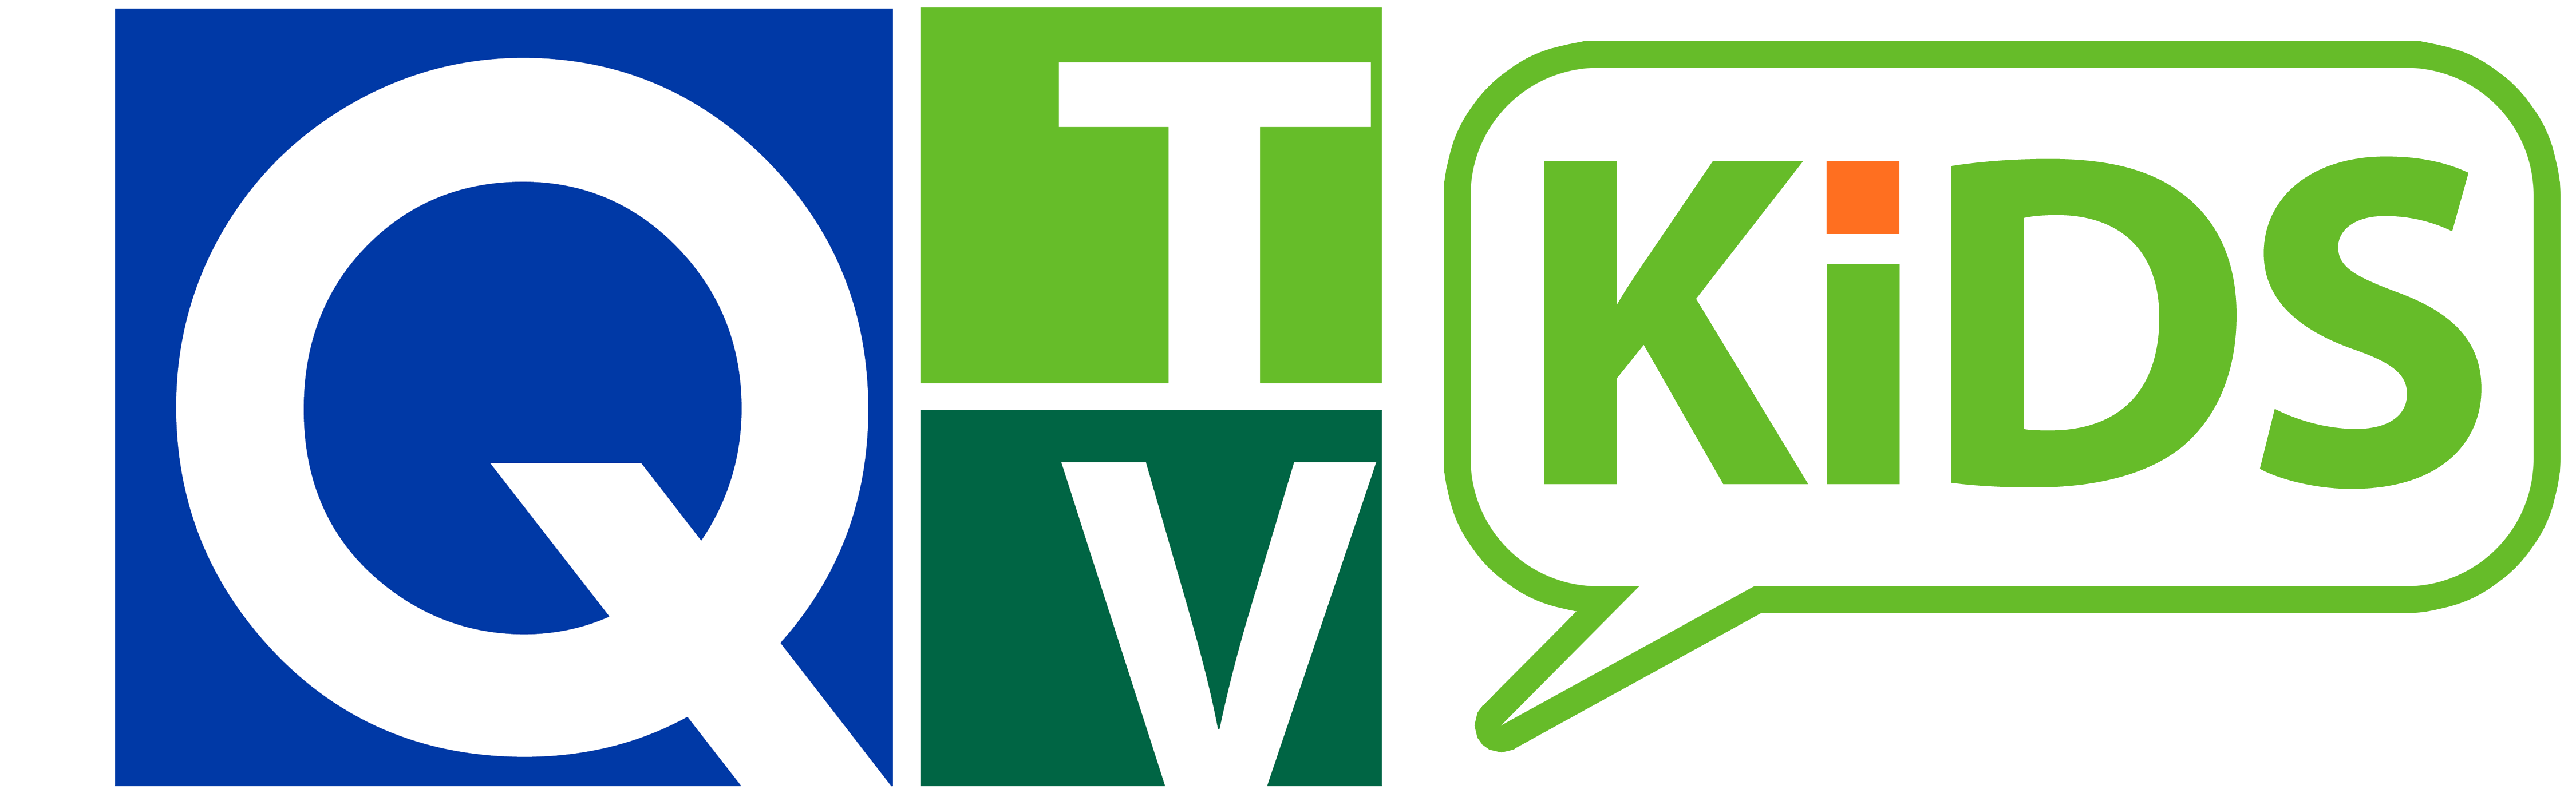 Q-TV Kids Logo with Delta College Name in White